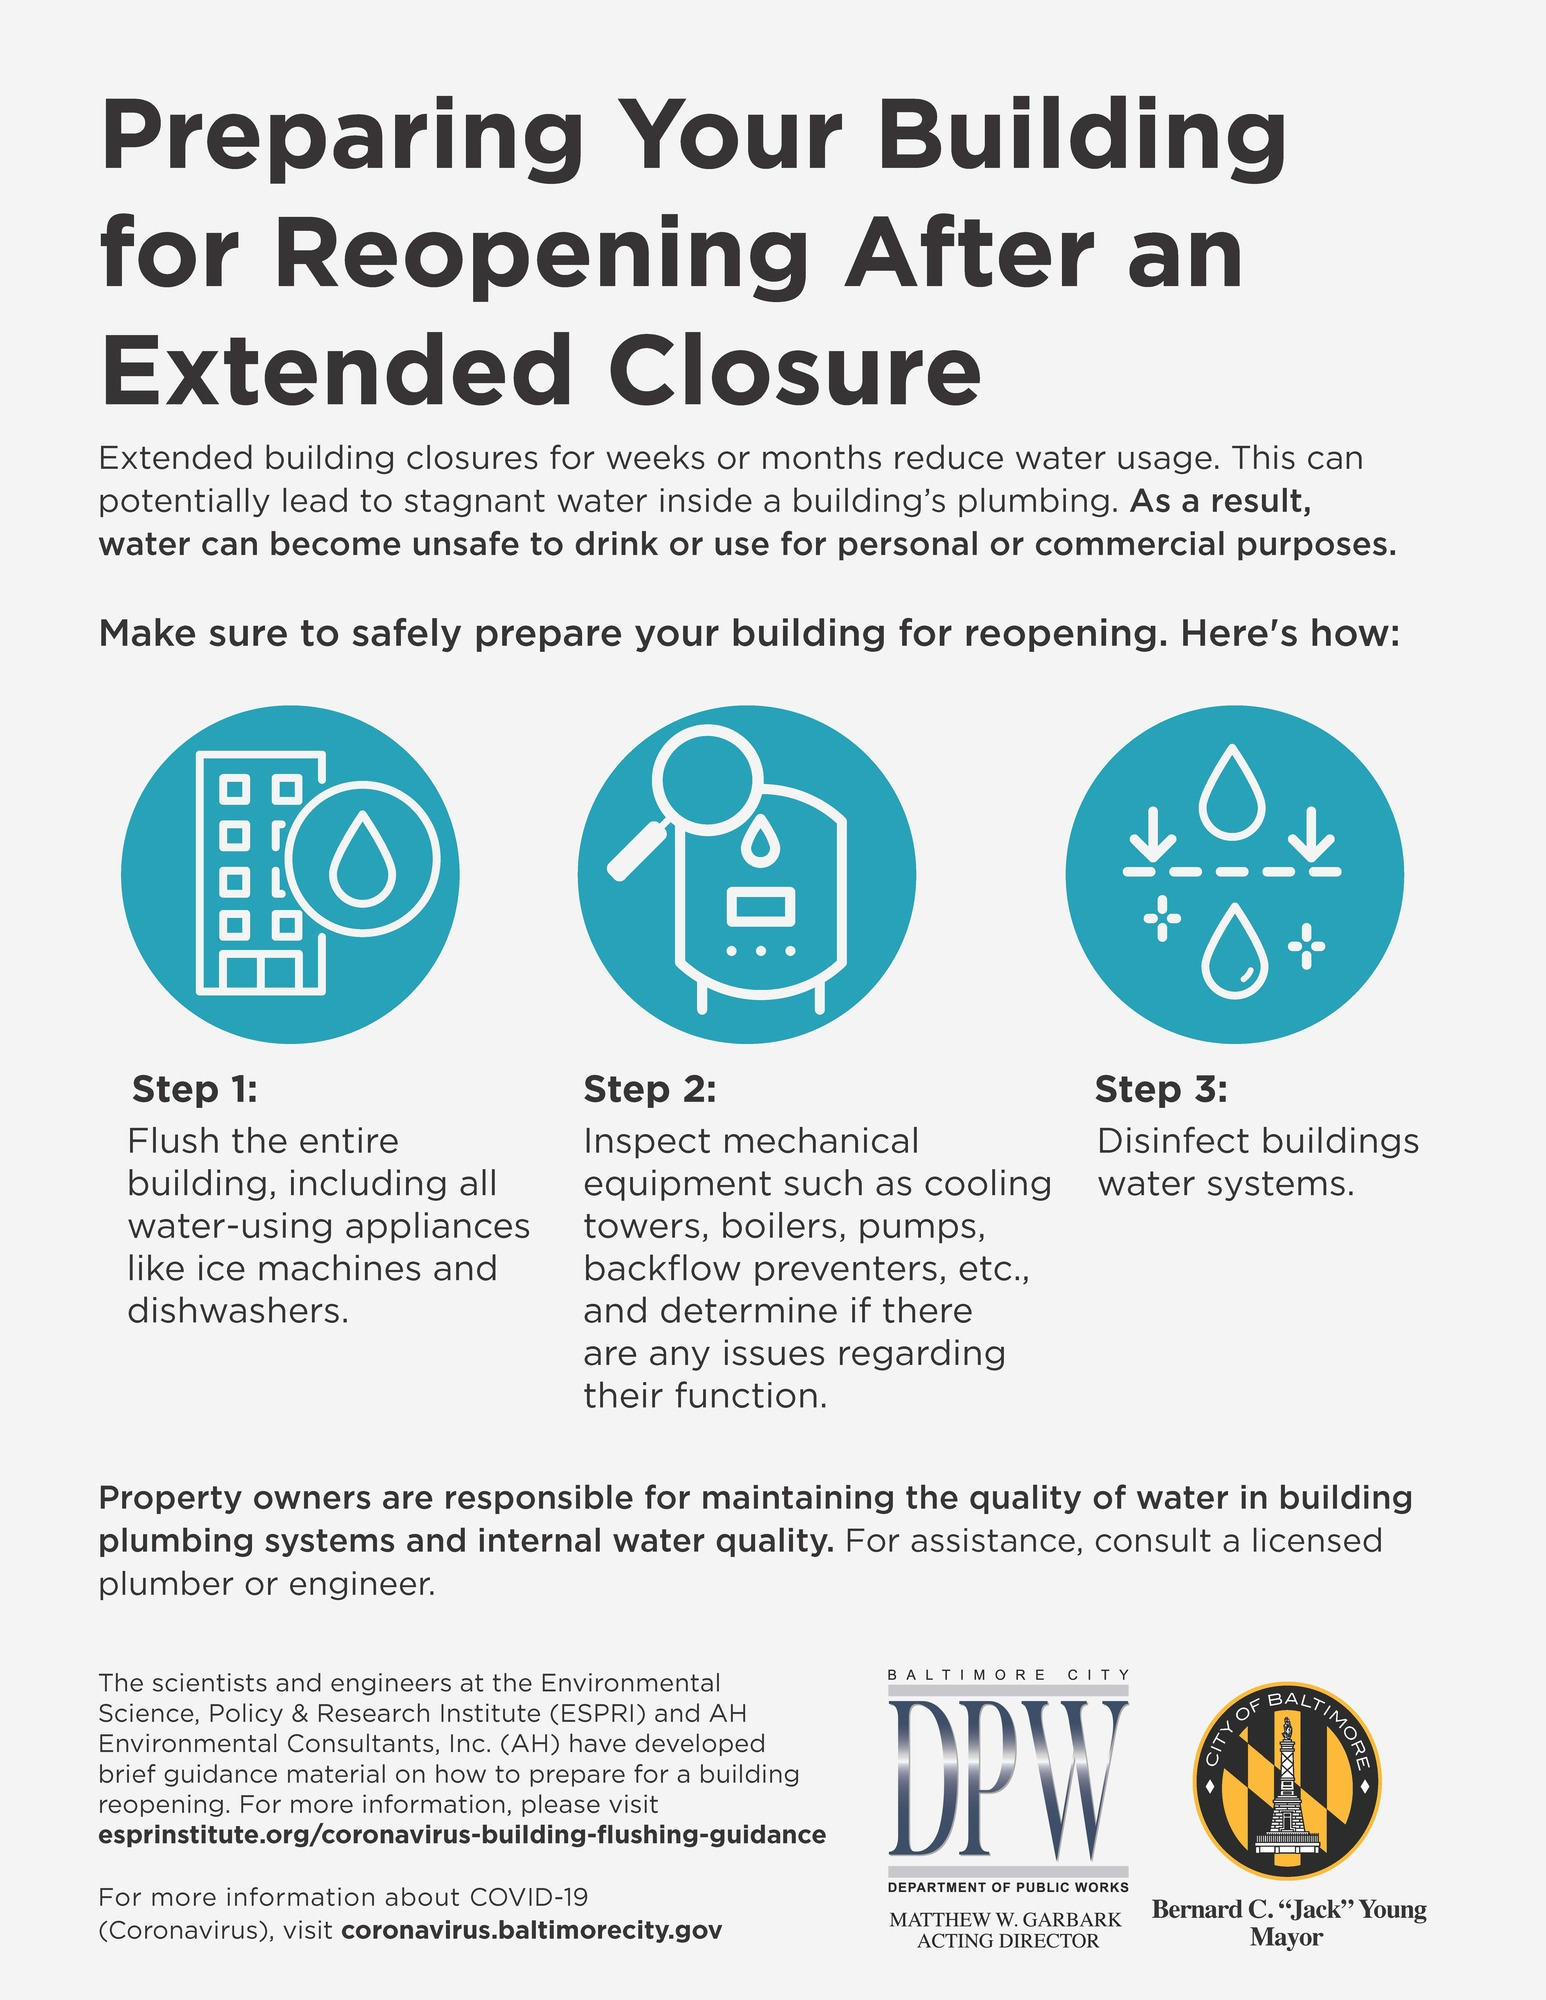 Building Reopening Infographic